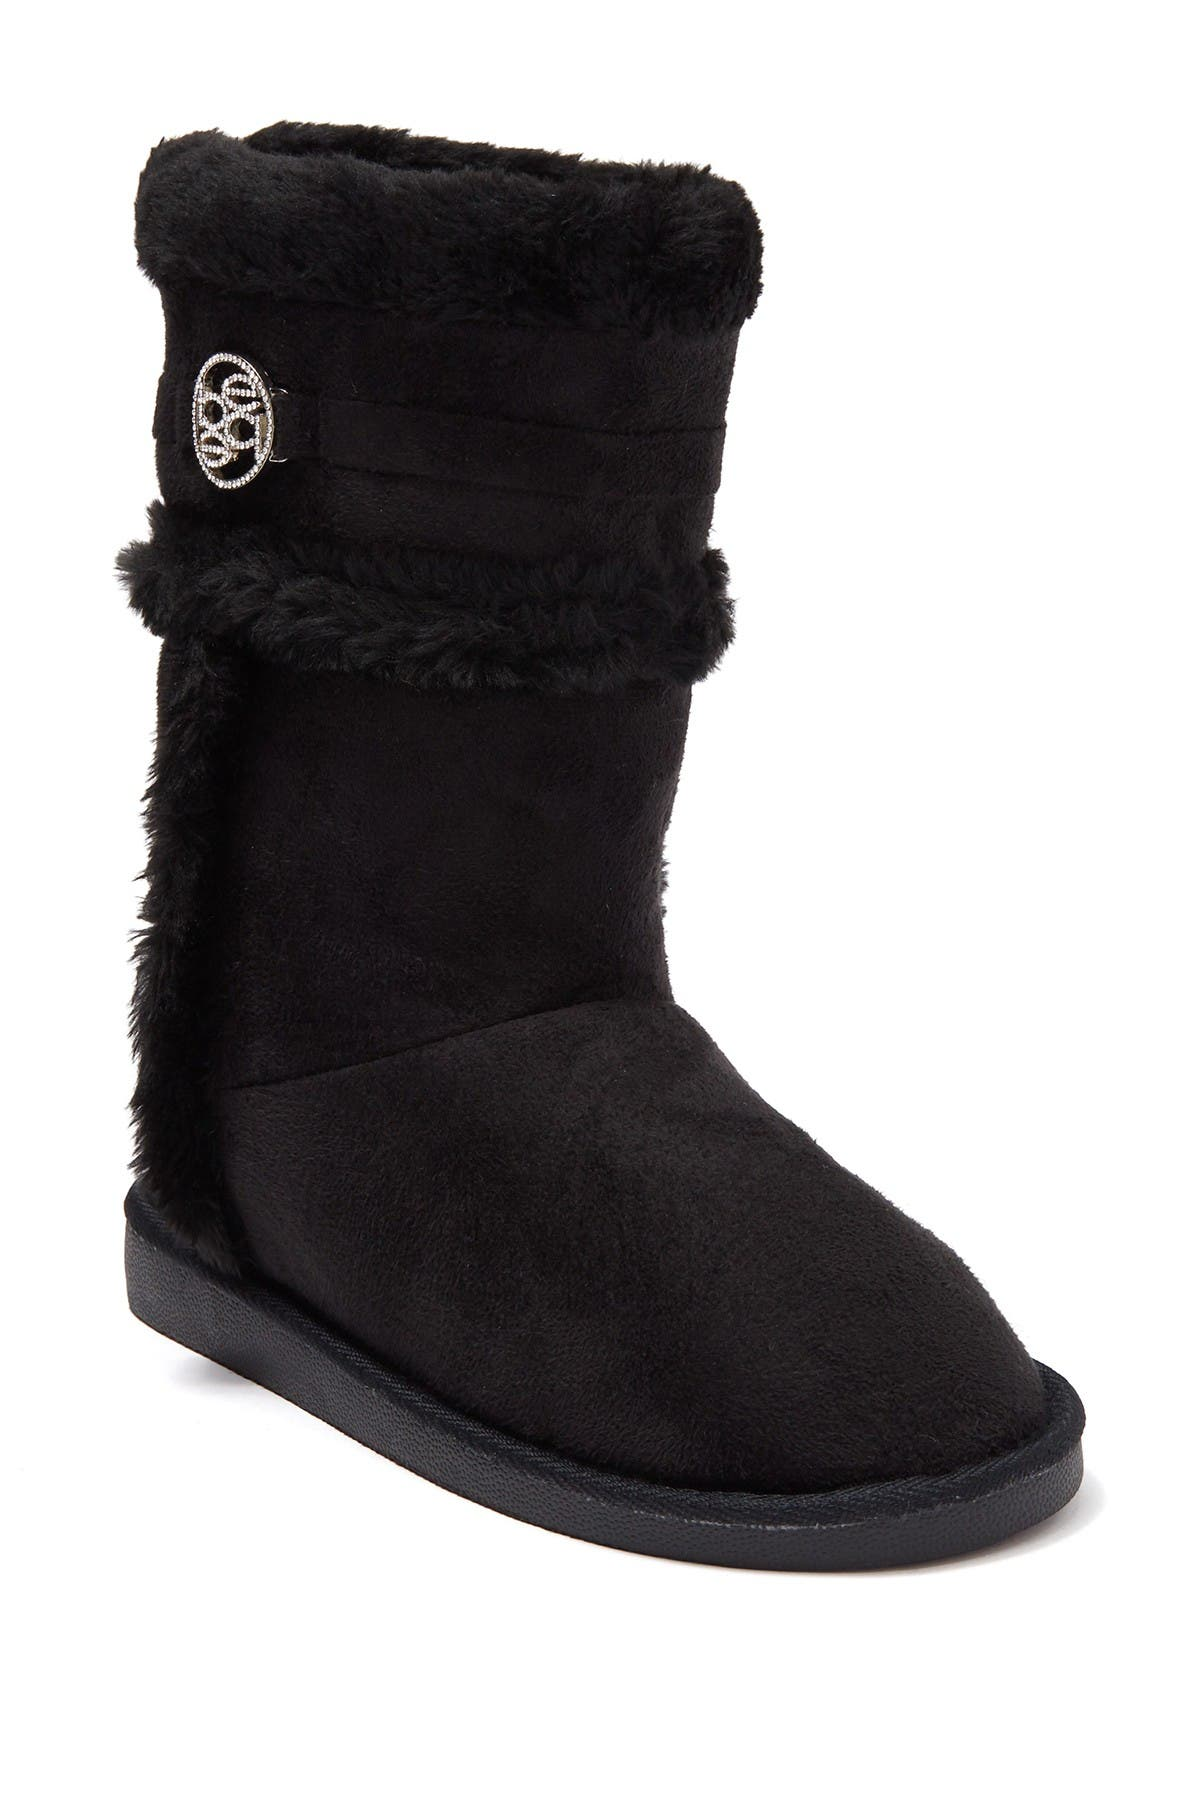 Bebe Tall Faux Fur Embellished Boot